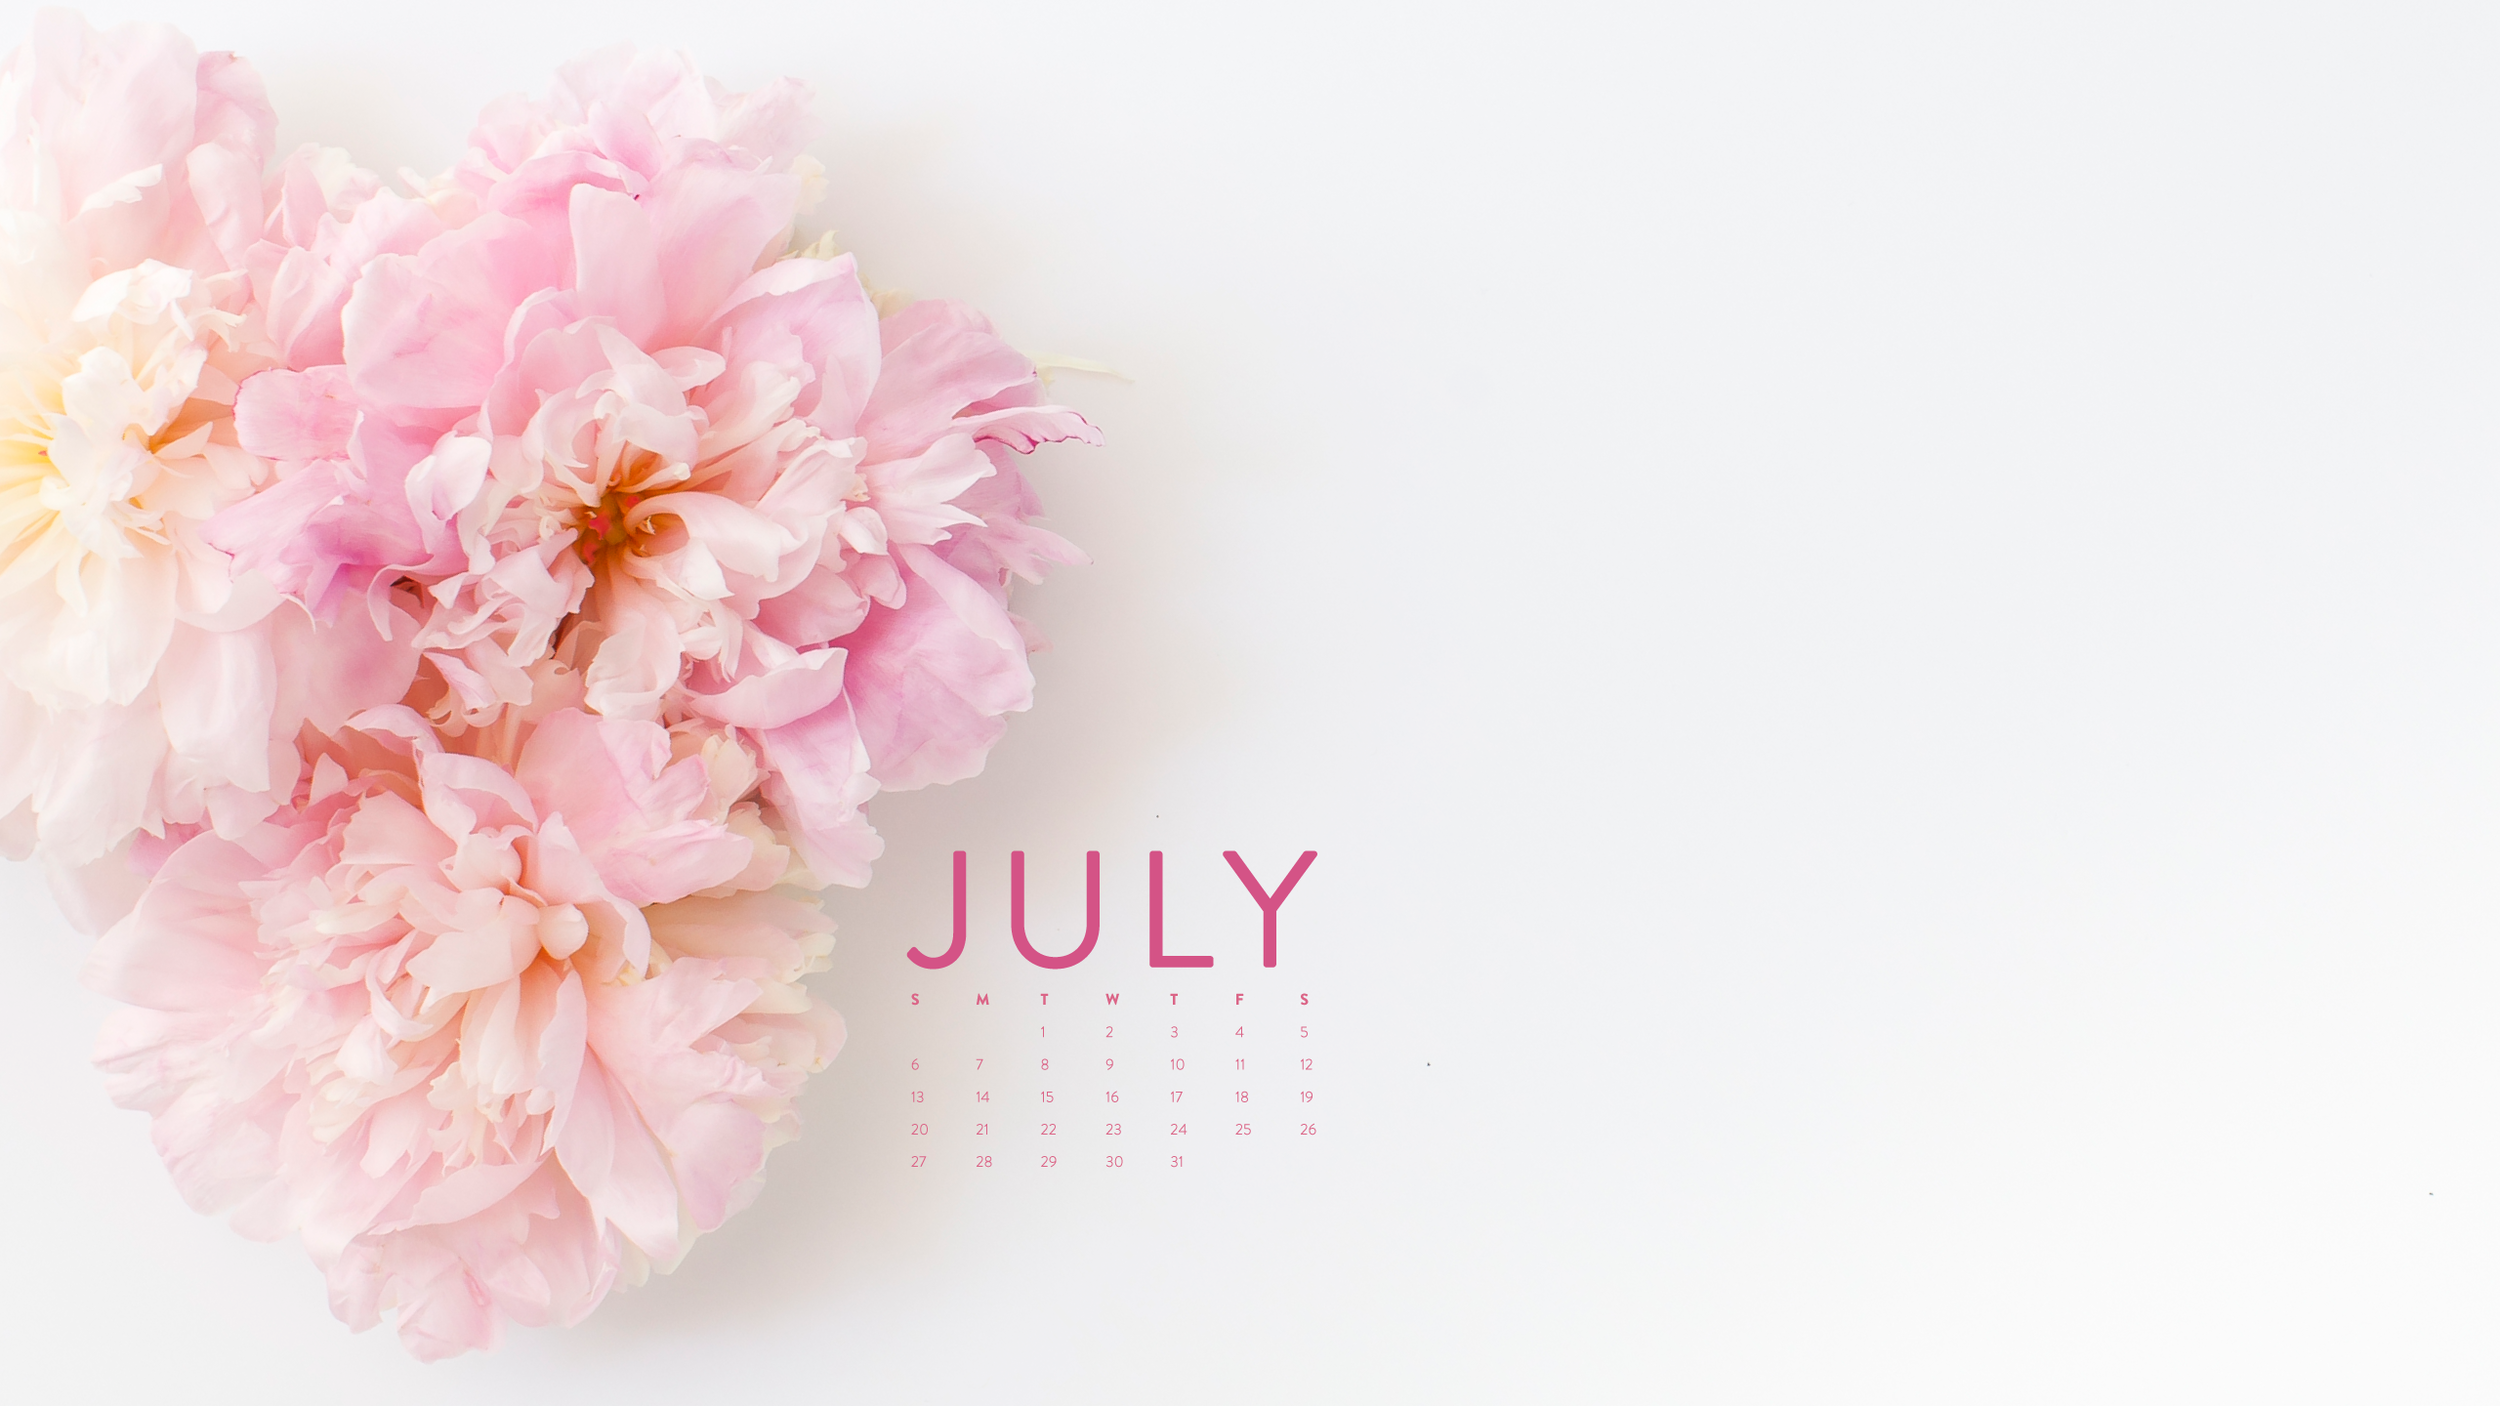 I found this gorgeous July calendar by  Shay Cochrane  on  Ashlee Proffitt's Site  =) Swoon.